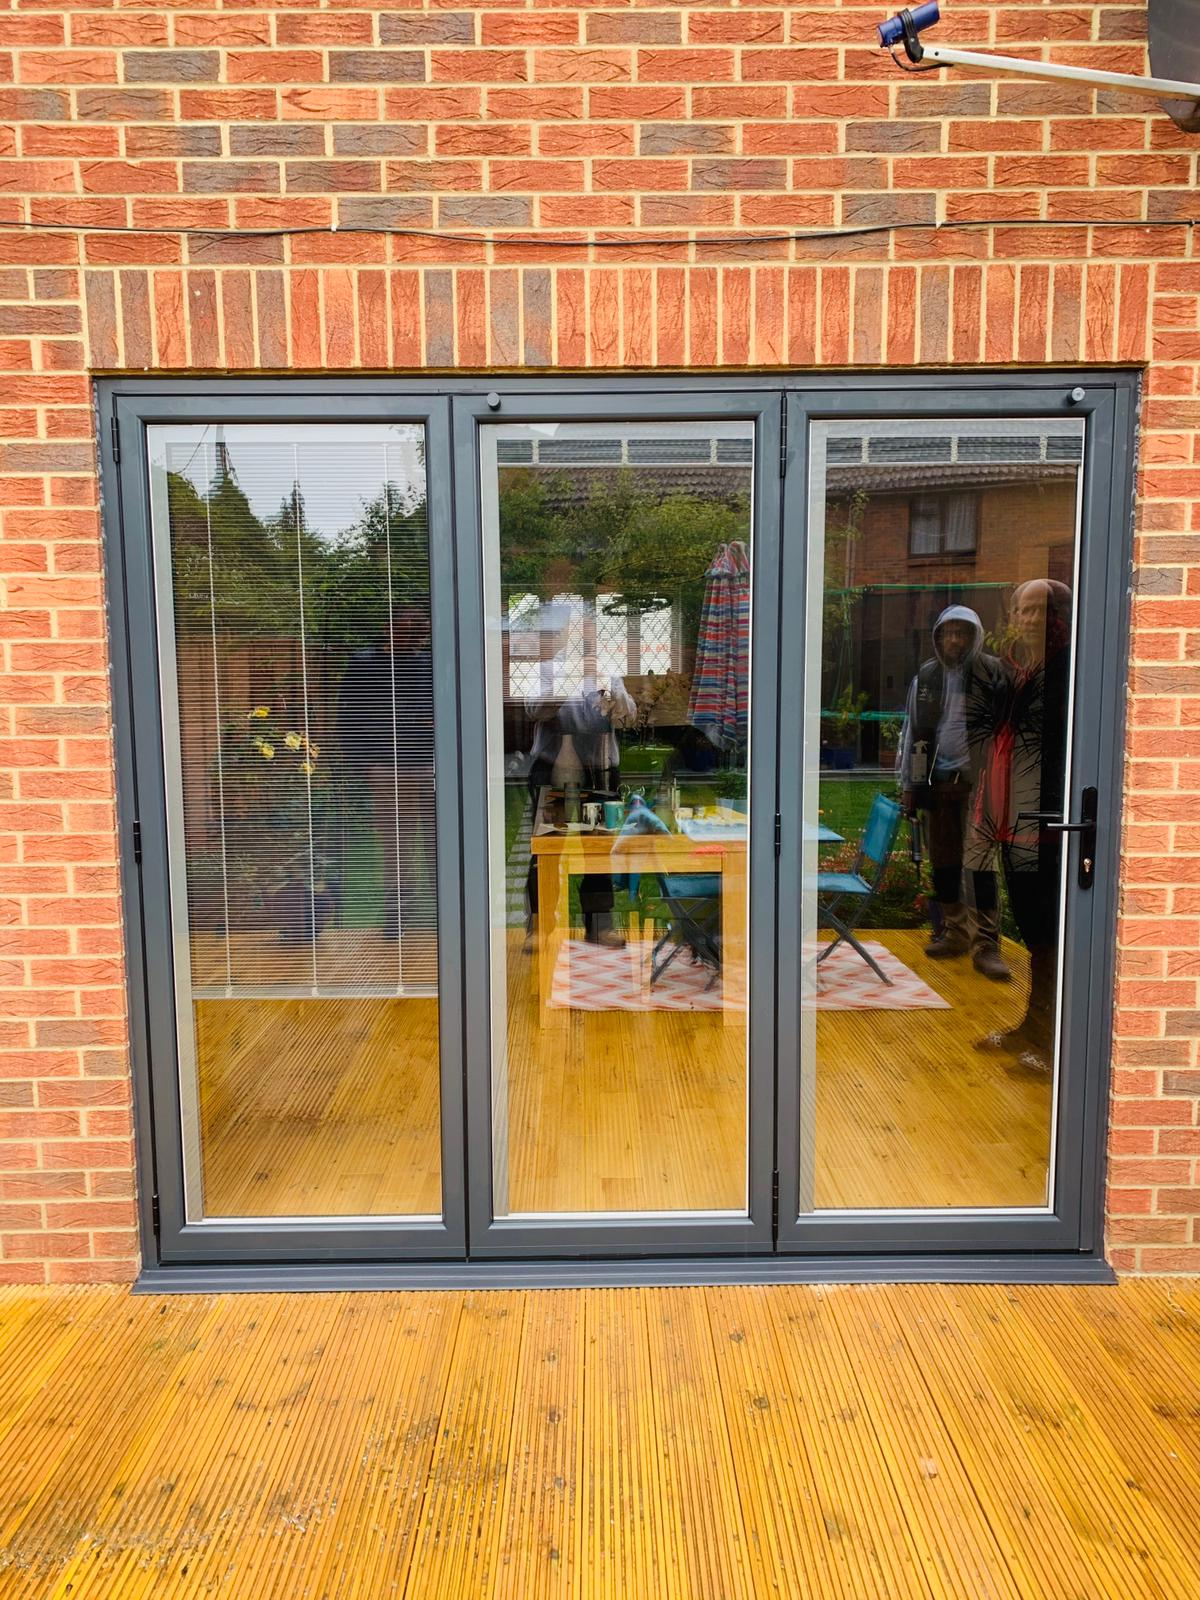 Bifold doors made up of three panes